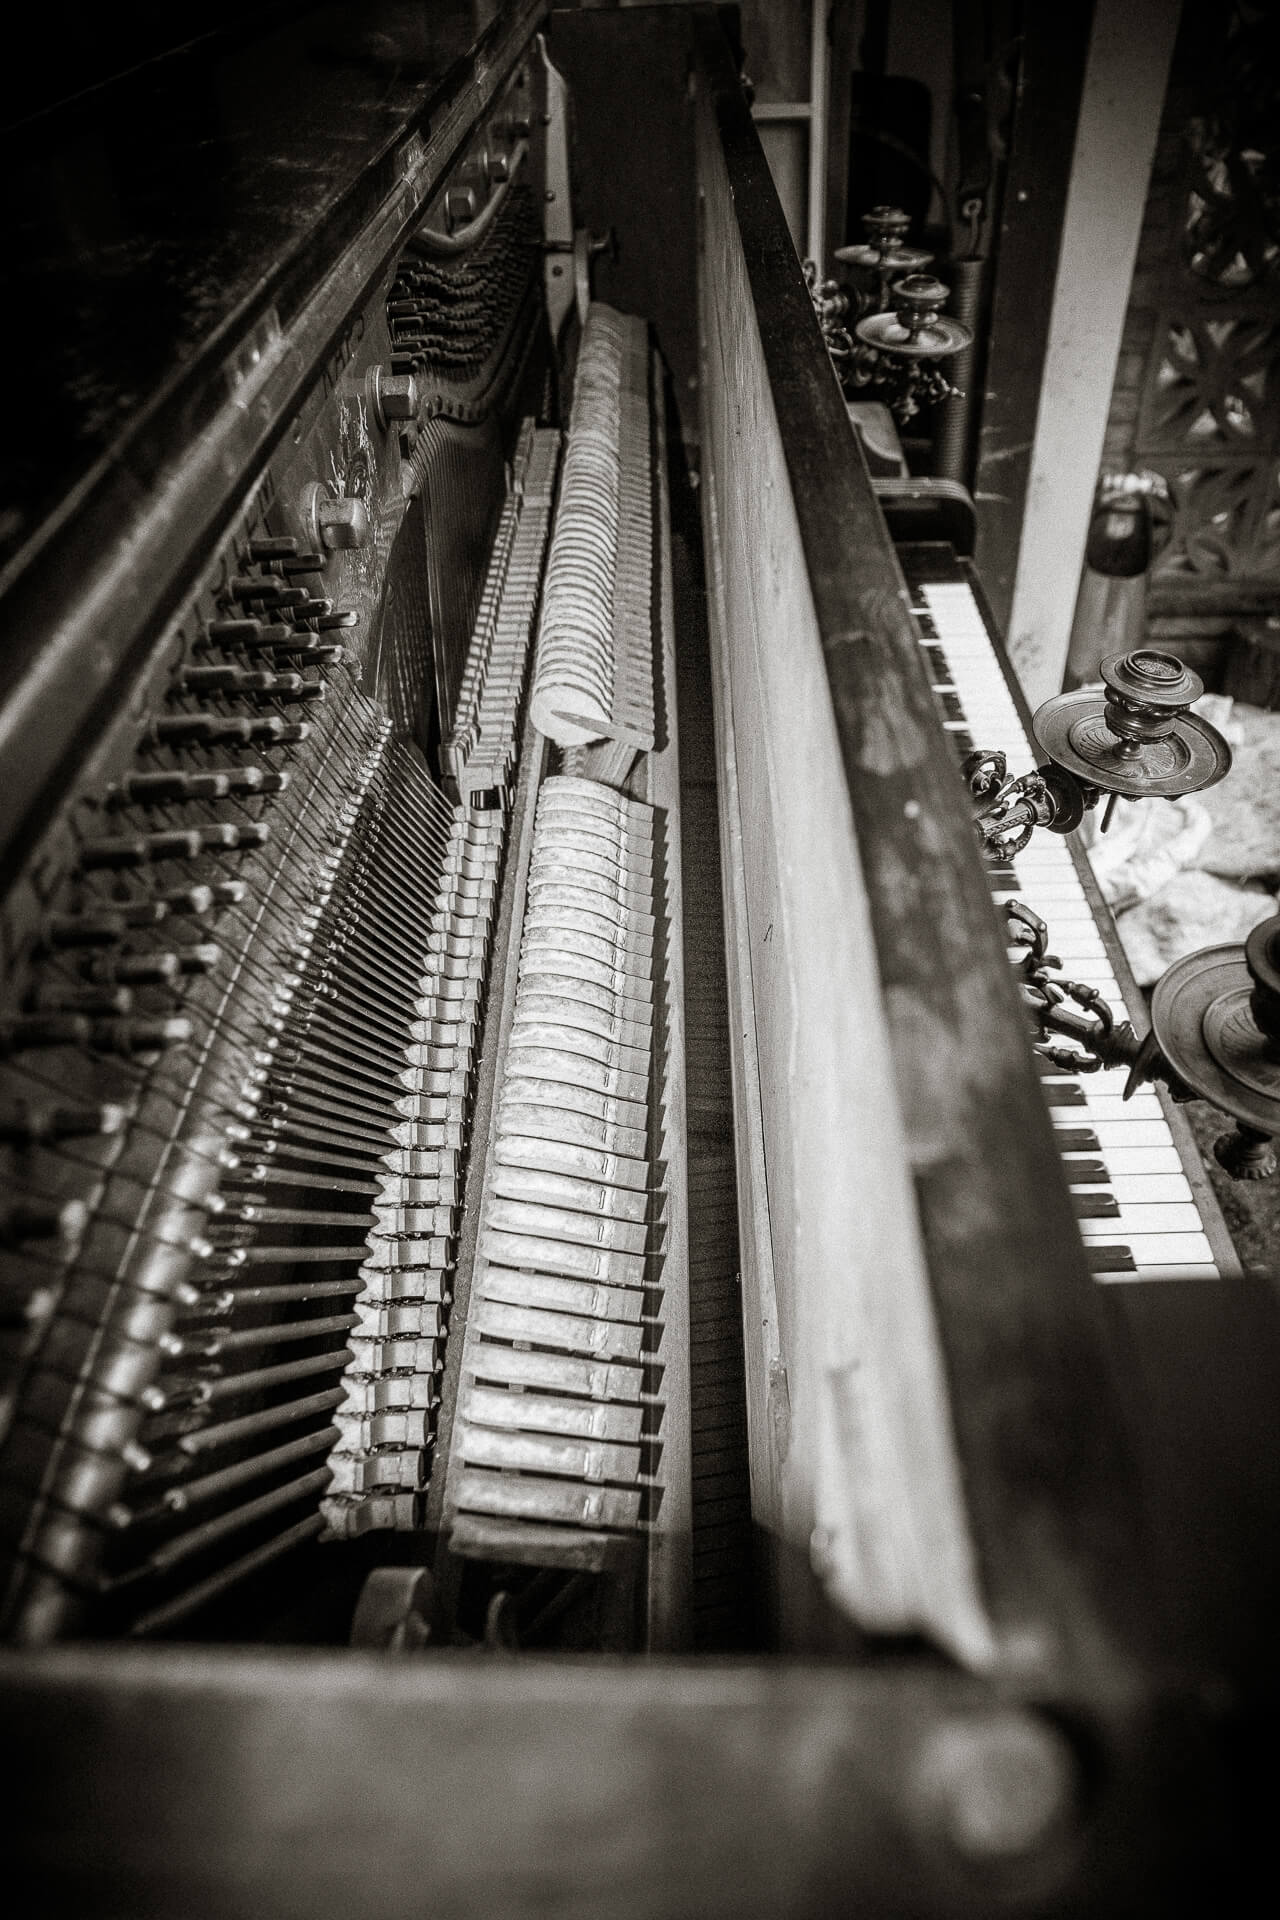 Black & White Photograph Of The Internal Workings of Painted Vintage Piano